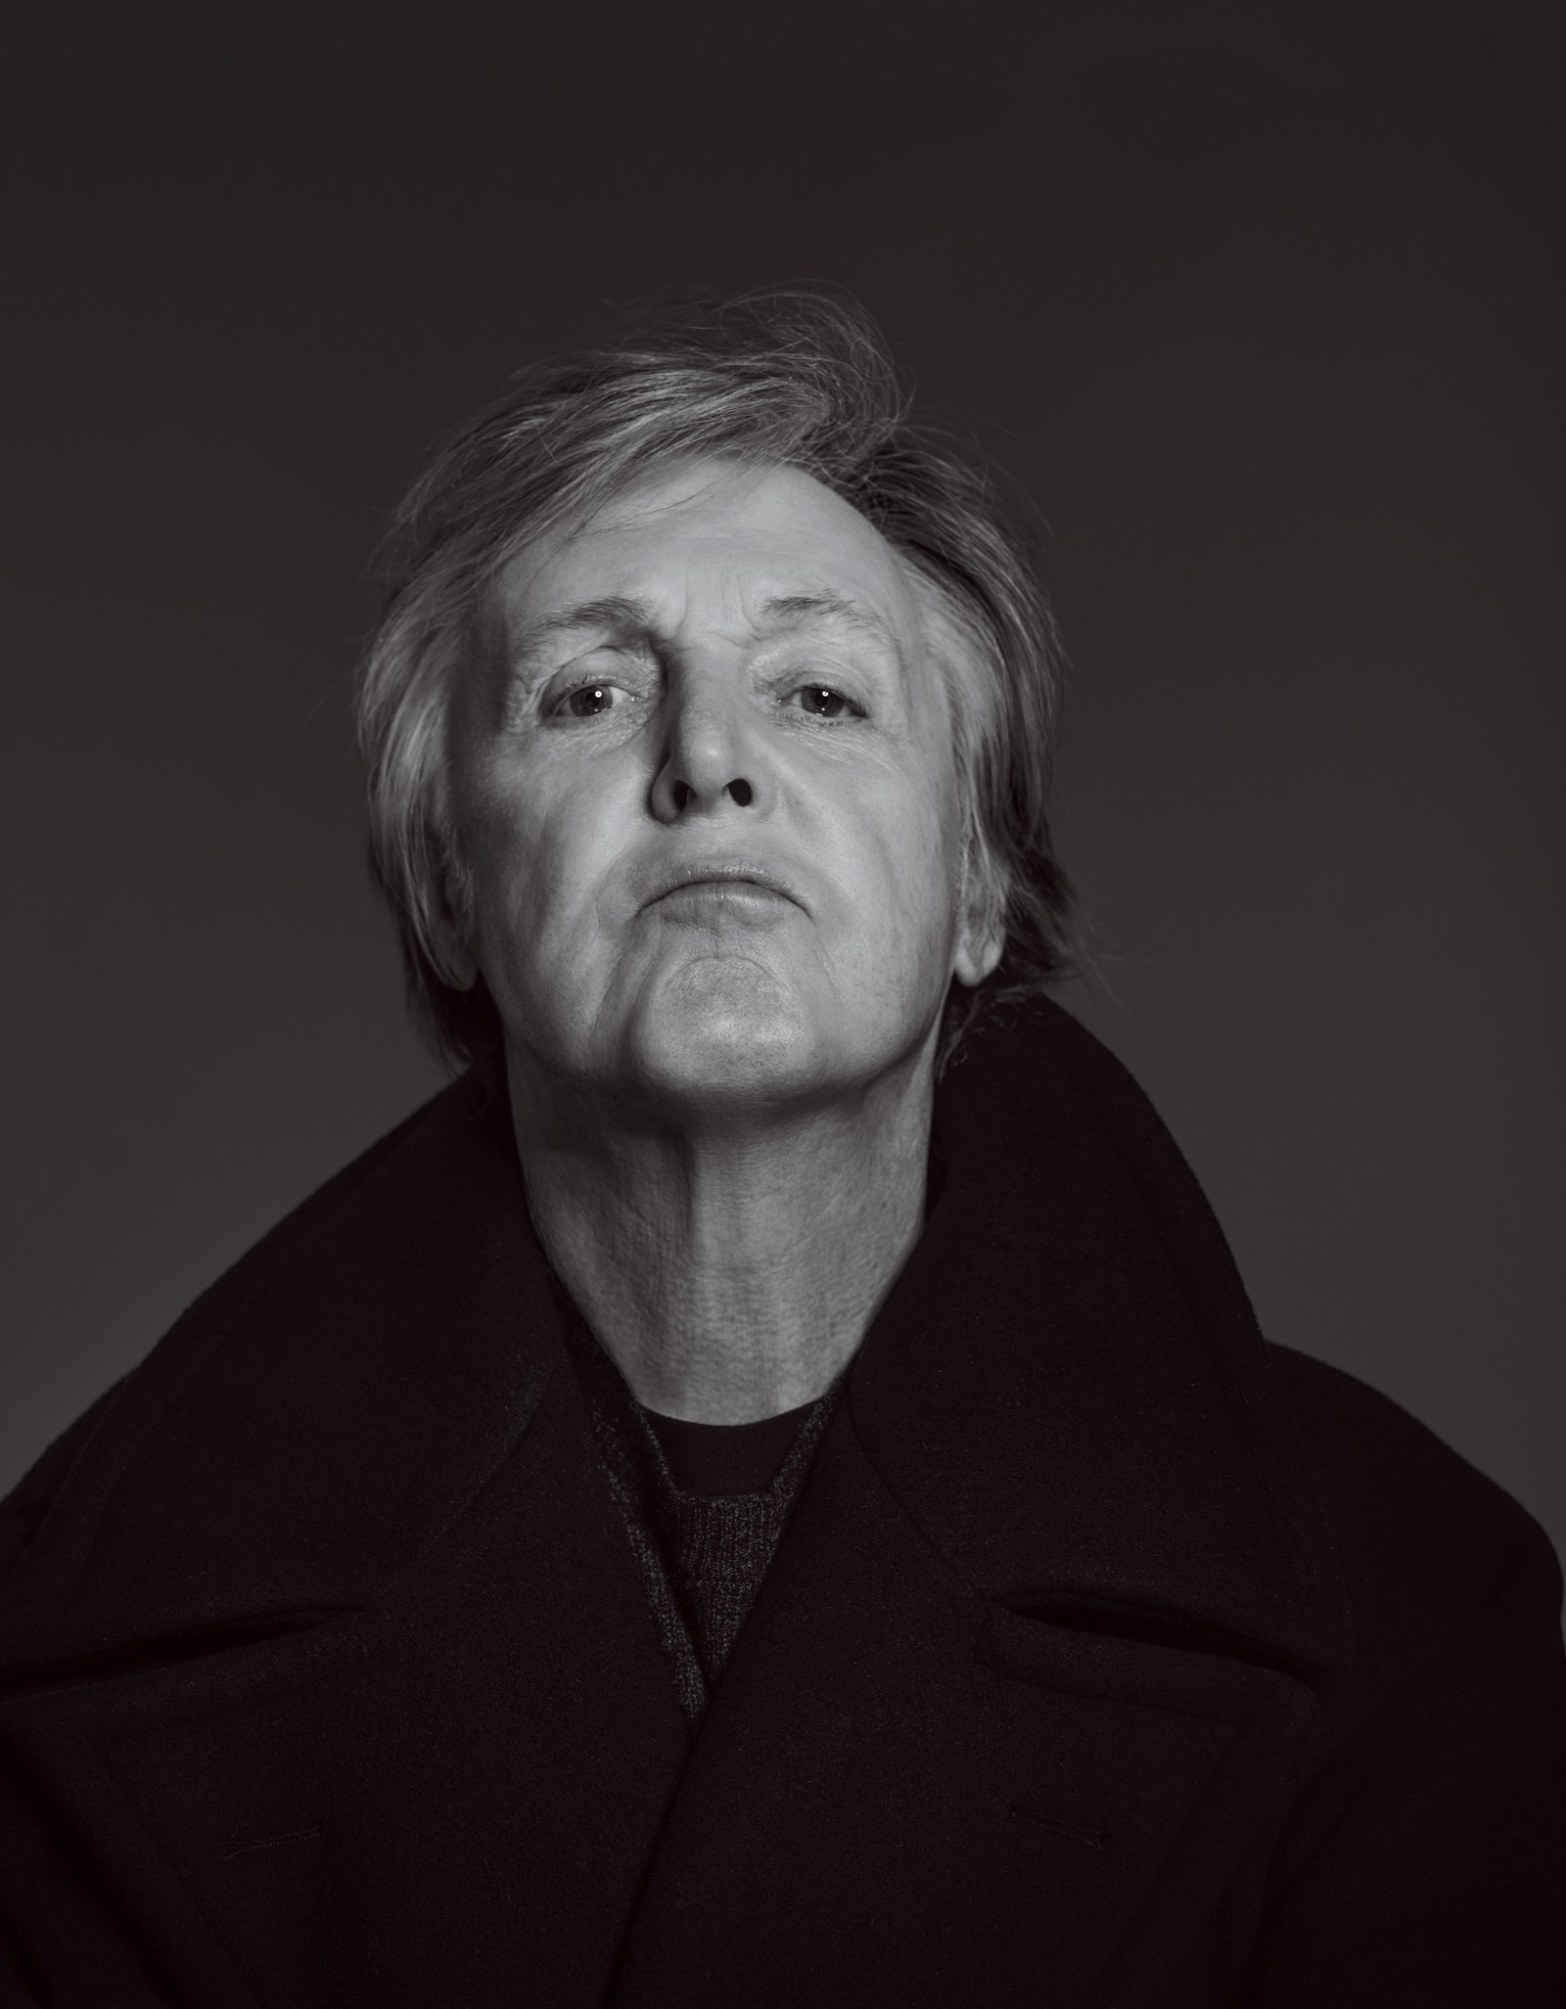 2019 Photo of Sir James Paul McCartney in which he particularly resembles Aleister Crowley, in my opinion.